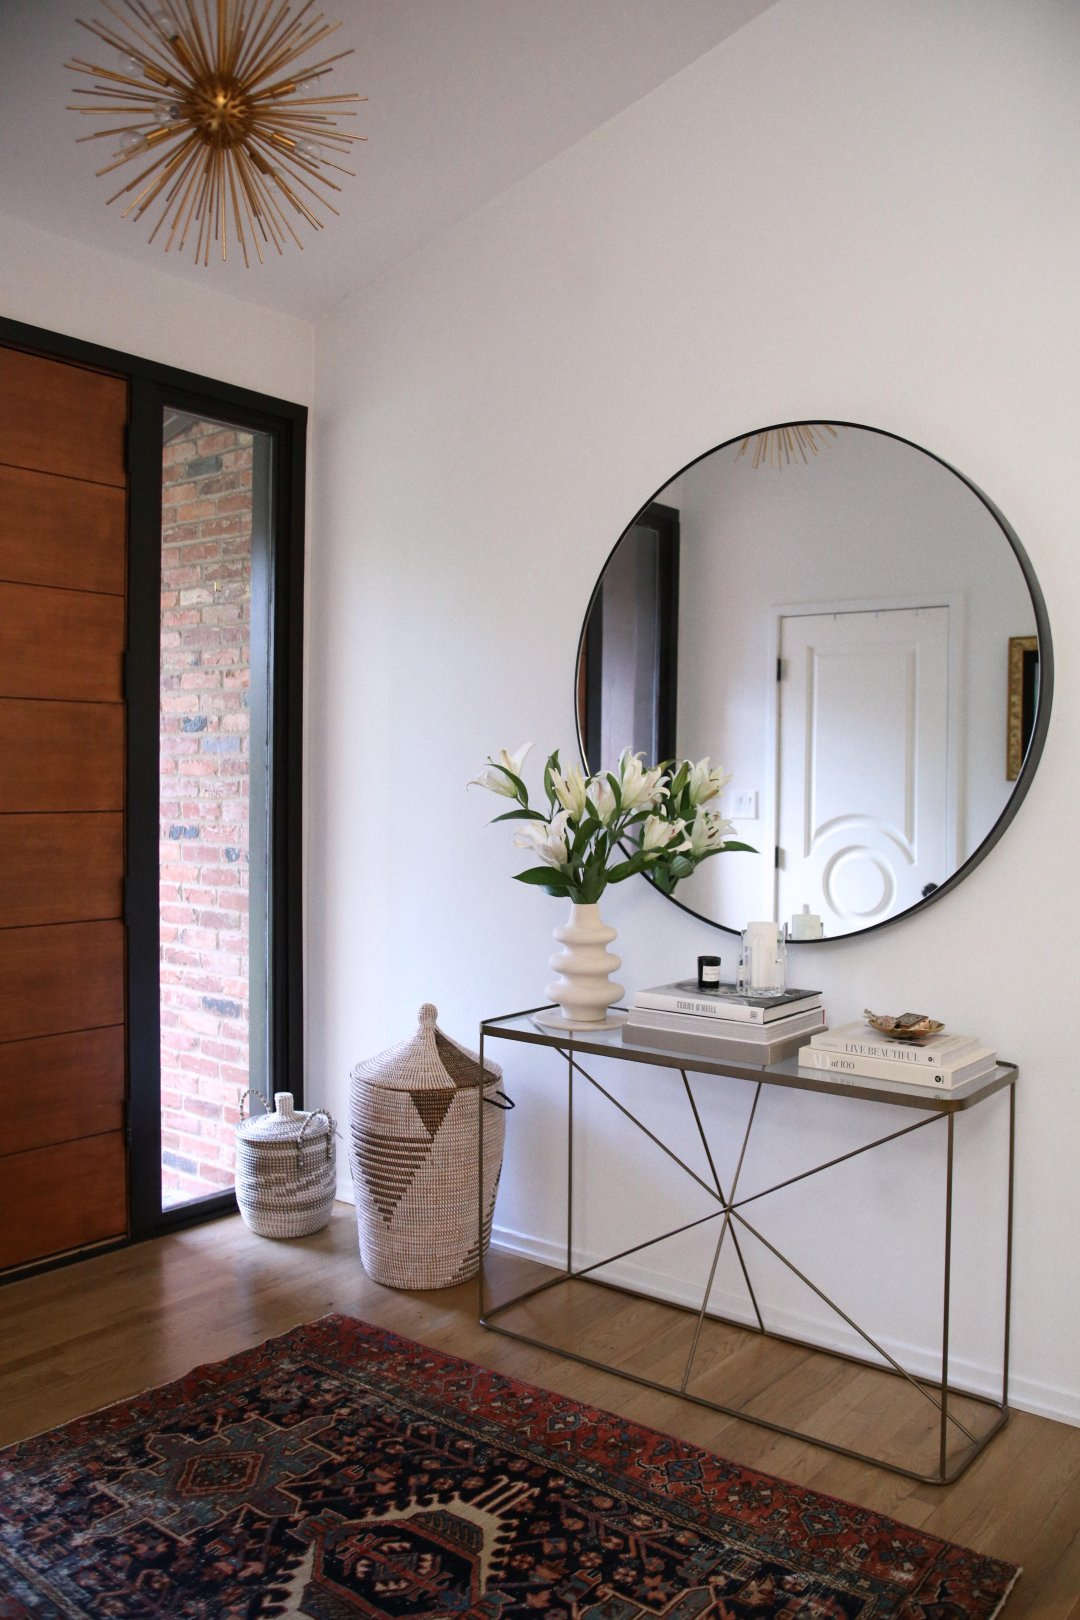 Use Round Mirrors To Complete Any Room In Your Home Kathy Kuo Blog Kathy Kuo Home